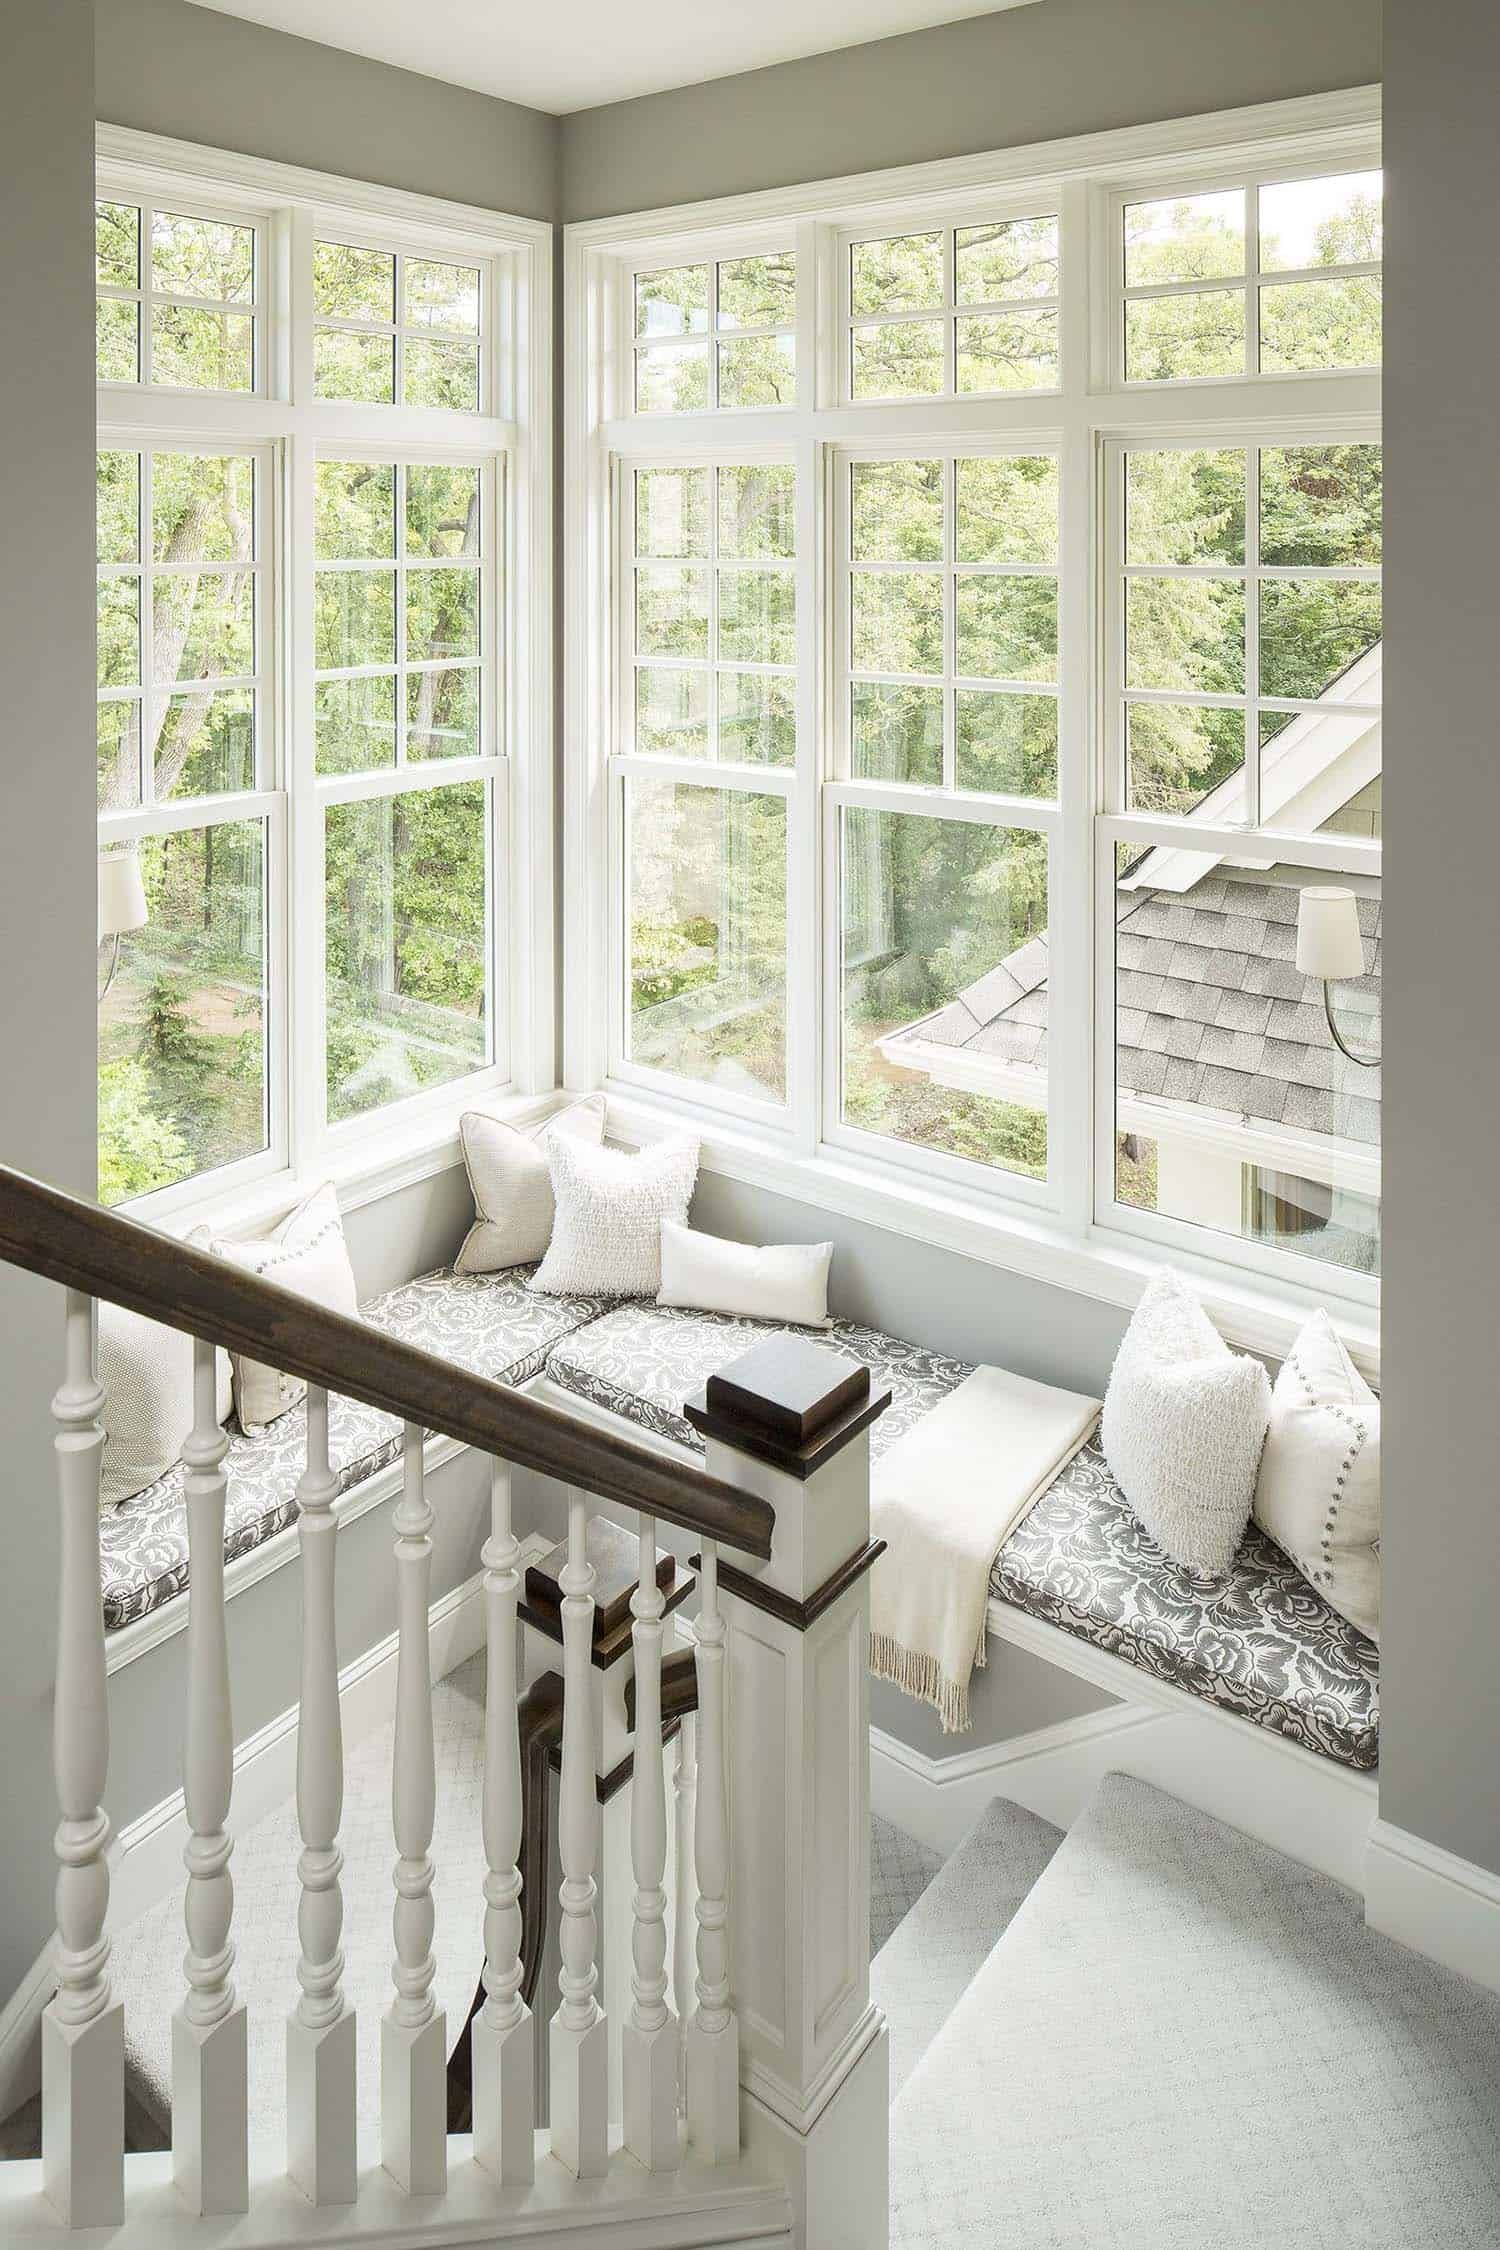 44 Window Nooks Framing Spectacular Views In 2020 Home Interior Design Cozy House Interior Architecture